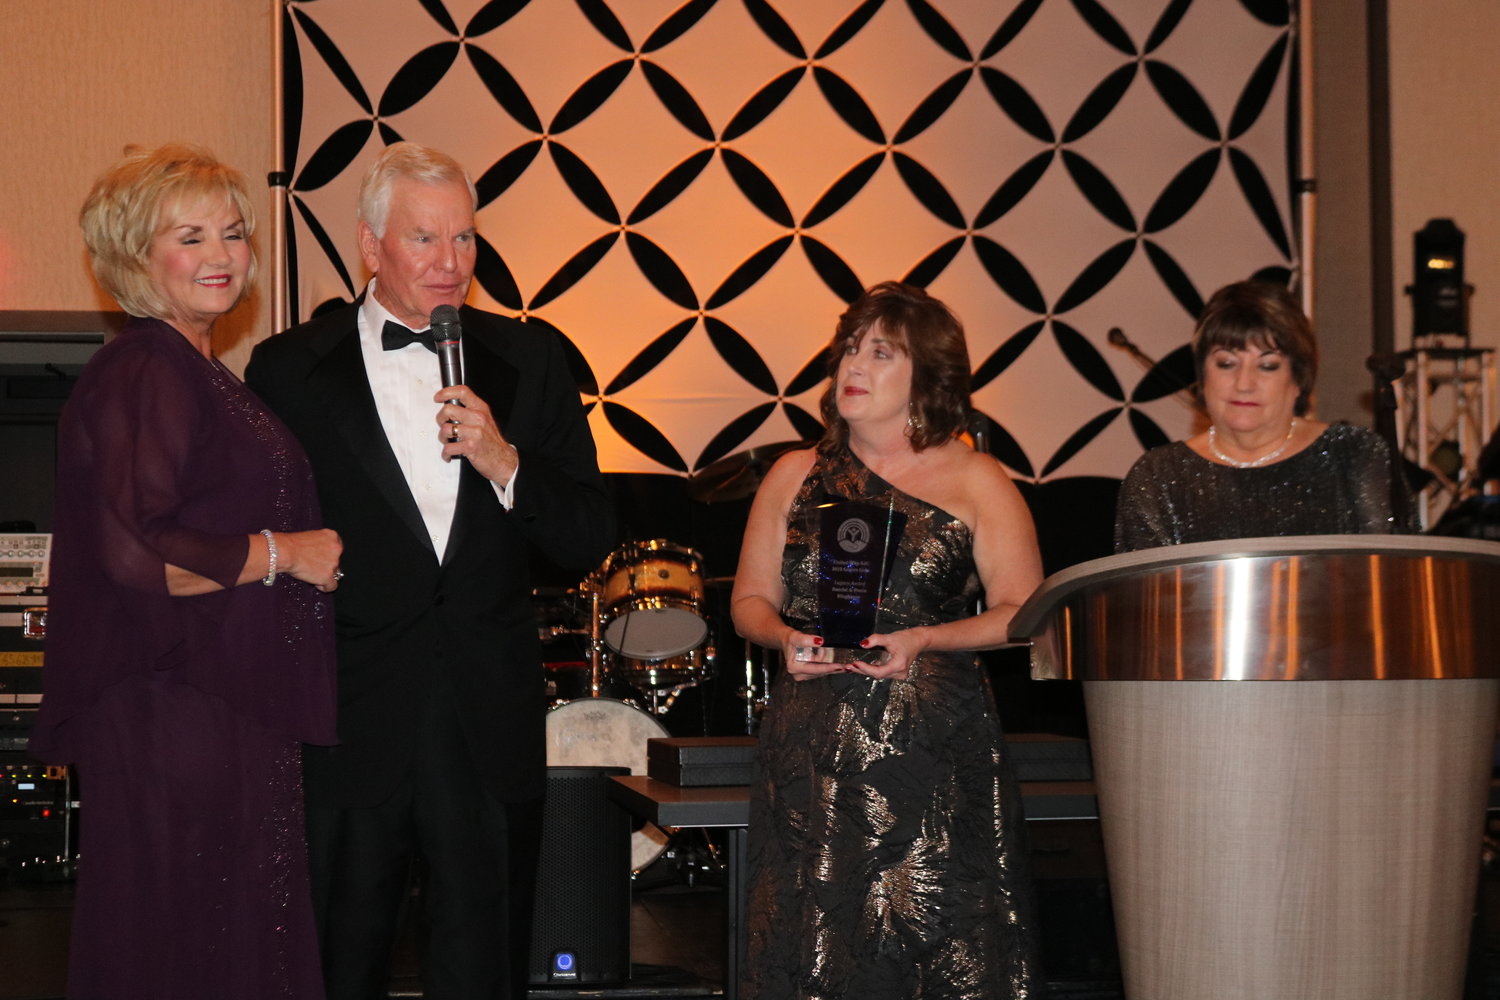 Paula and Randall Ringhaver, alongside Melissa Nelson and Bev Slough, address the crowd after receiving the Legacy Award.